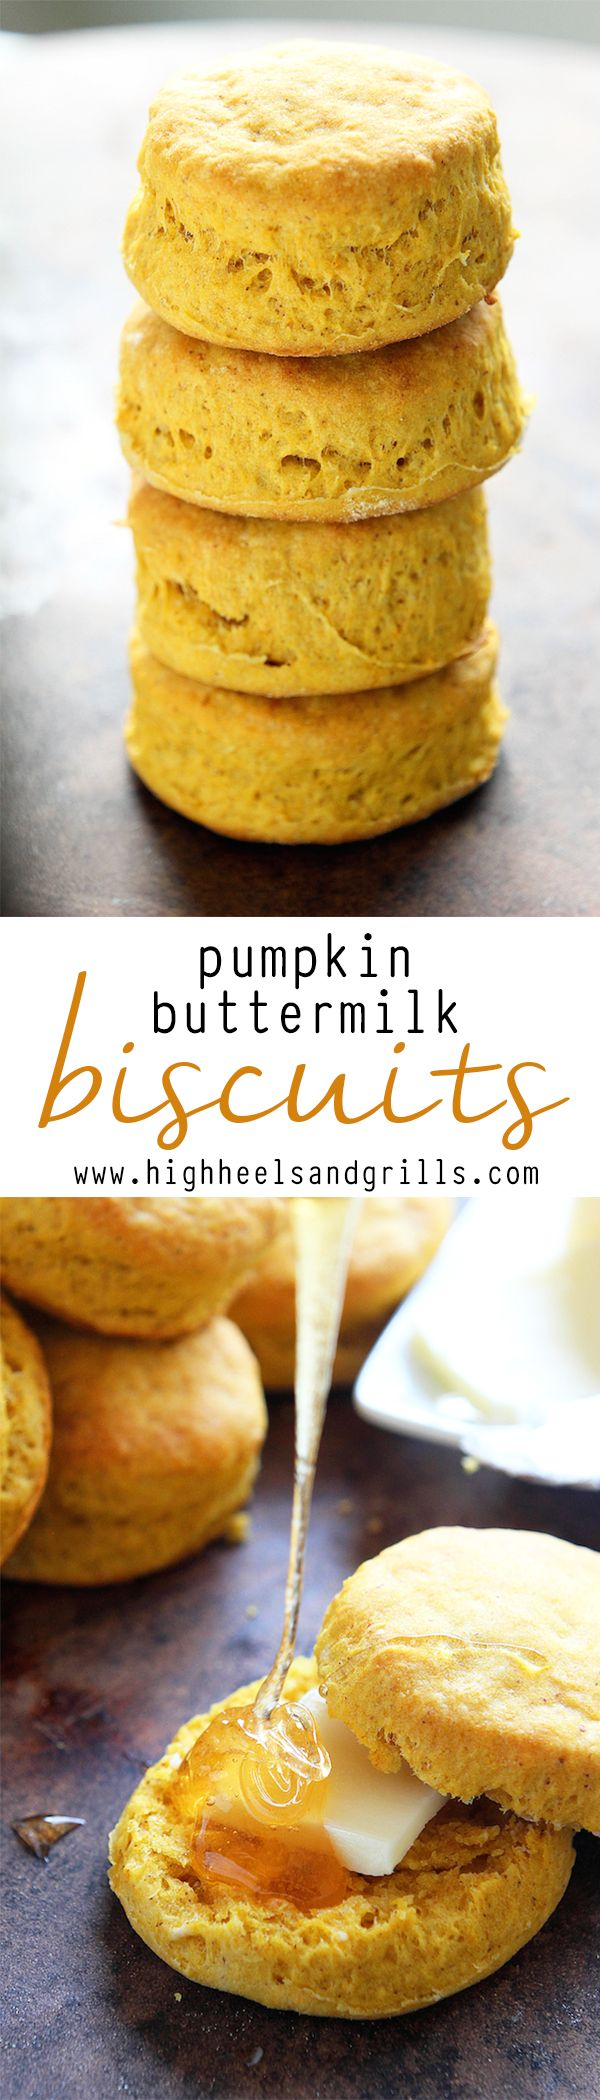 Pumpkin Buttermilk Biscuits - Tall, flaky, pumpkiny, biscuits that are perfect for fall time!